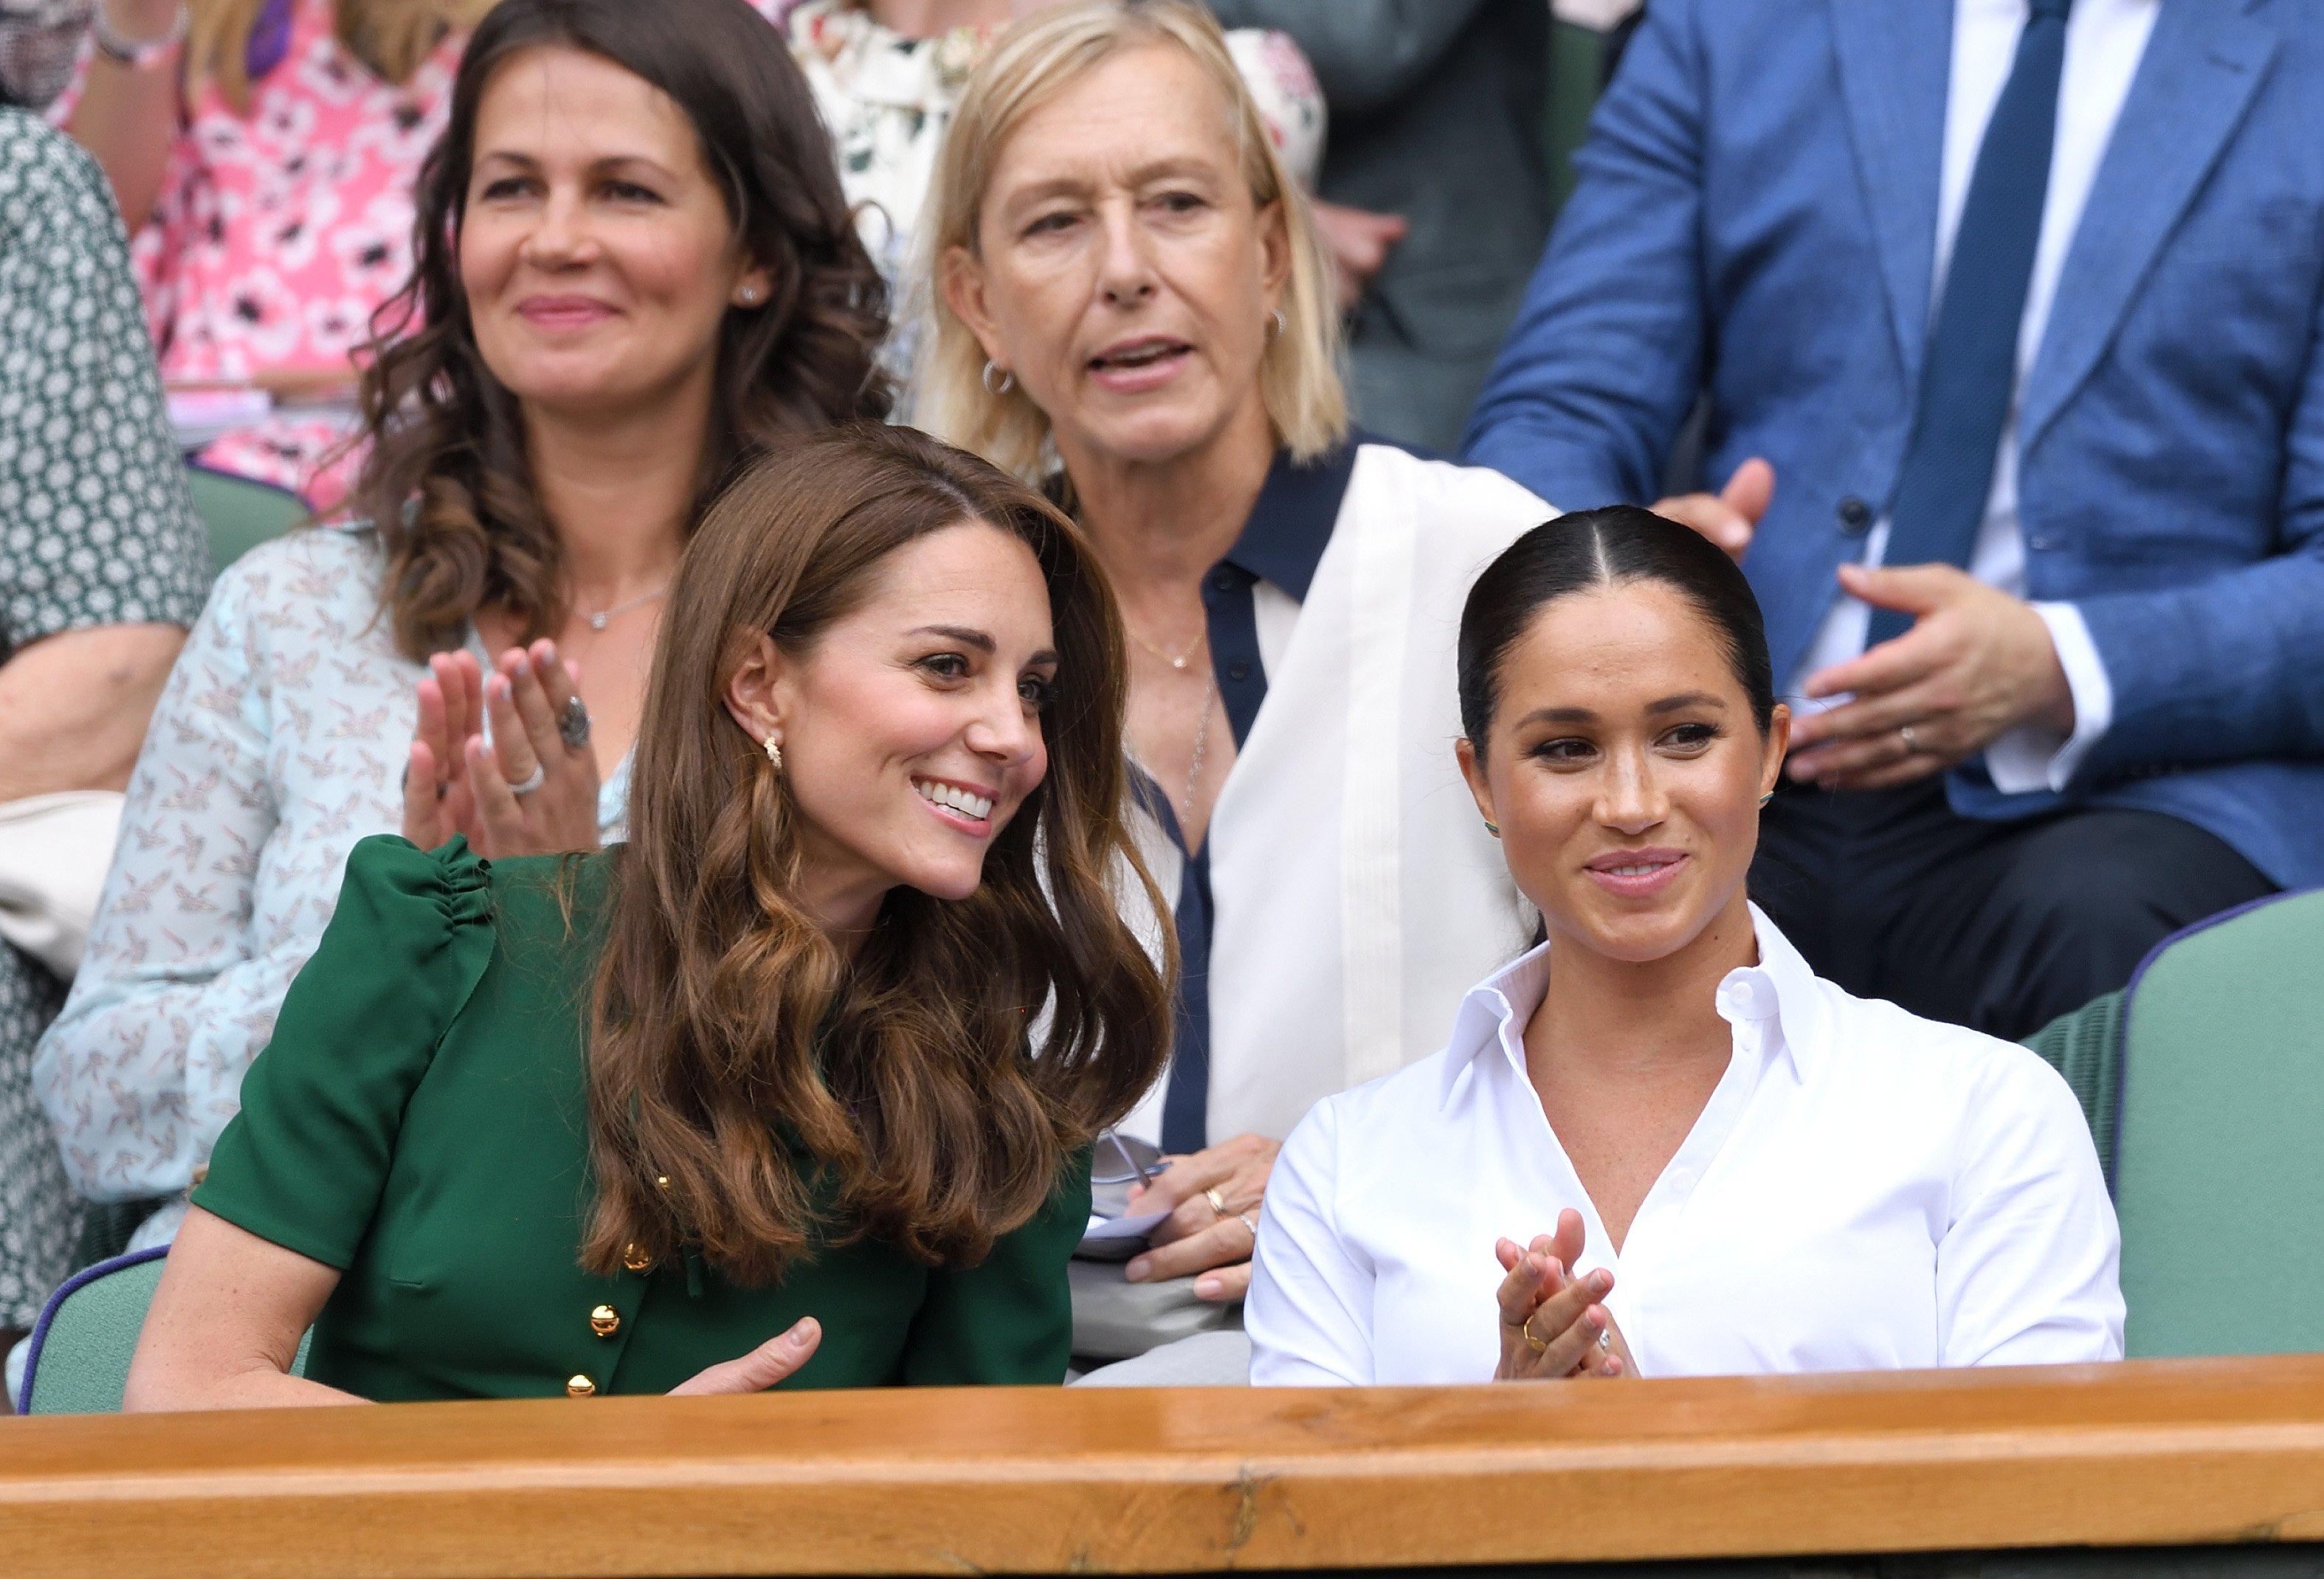 Kate Middleton and Meghan Markle at the Wimbledon Tennis Championship on July 13, 2019 | Photo: GettyImages